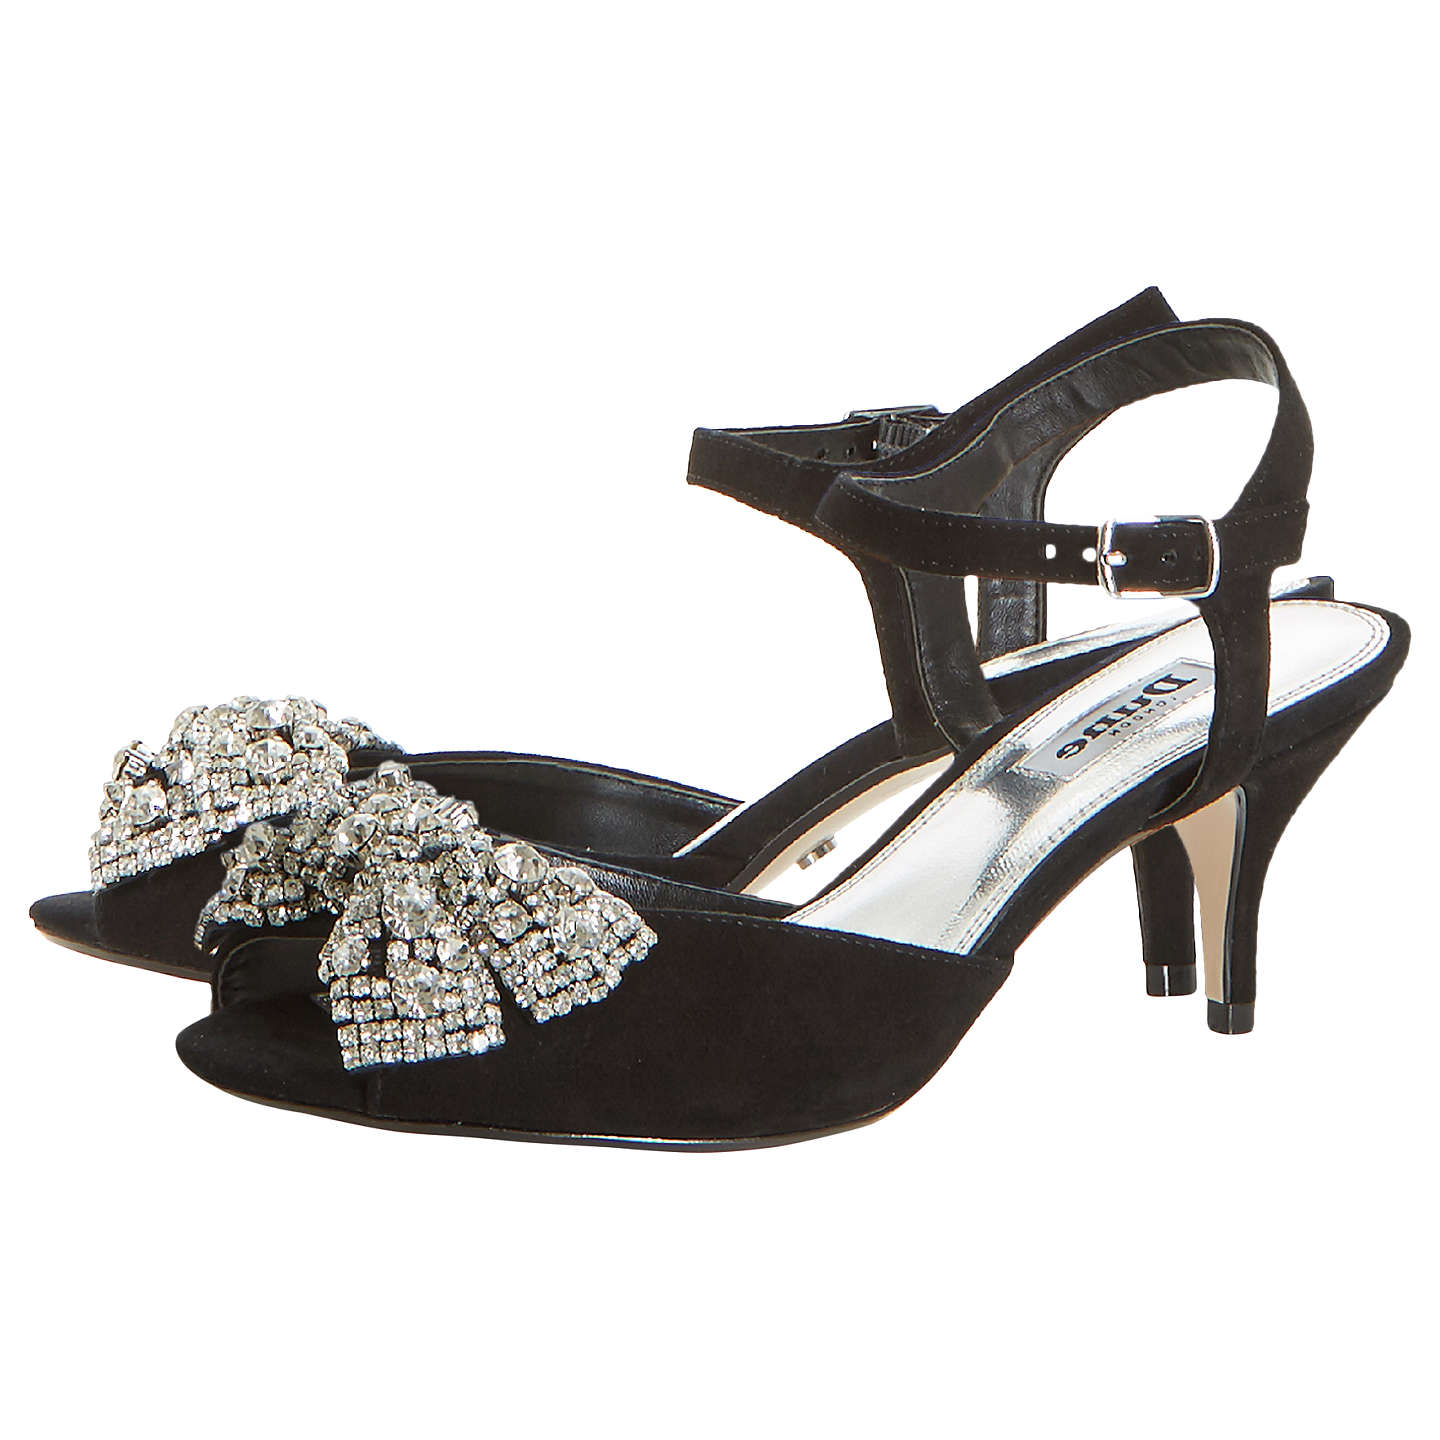 BuyDune Majestie Kitten Heel Sandals, Black Suede, 3 Online at johnlewis.com